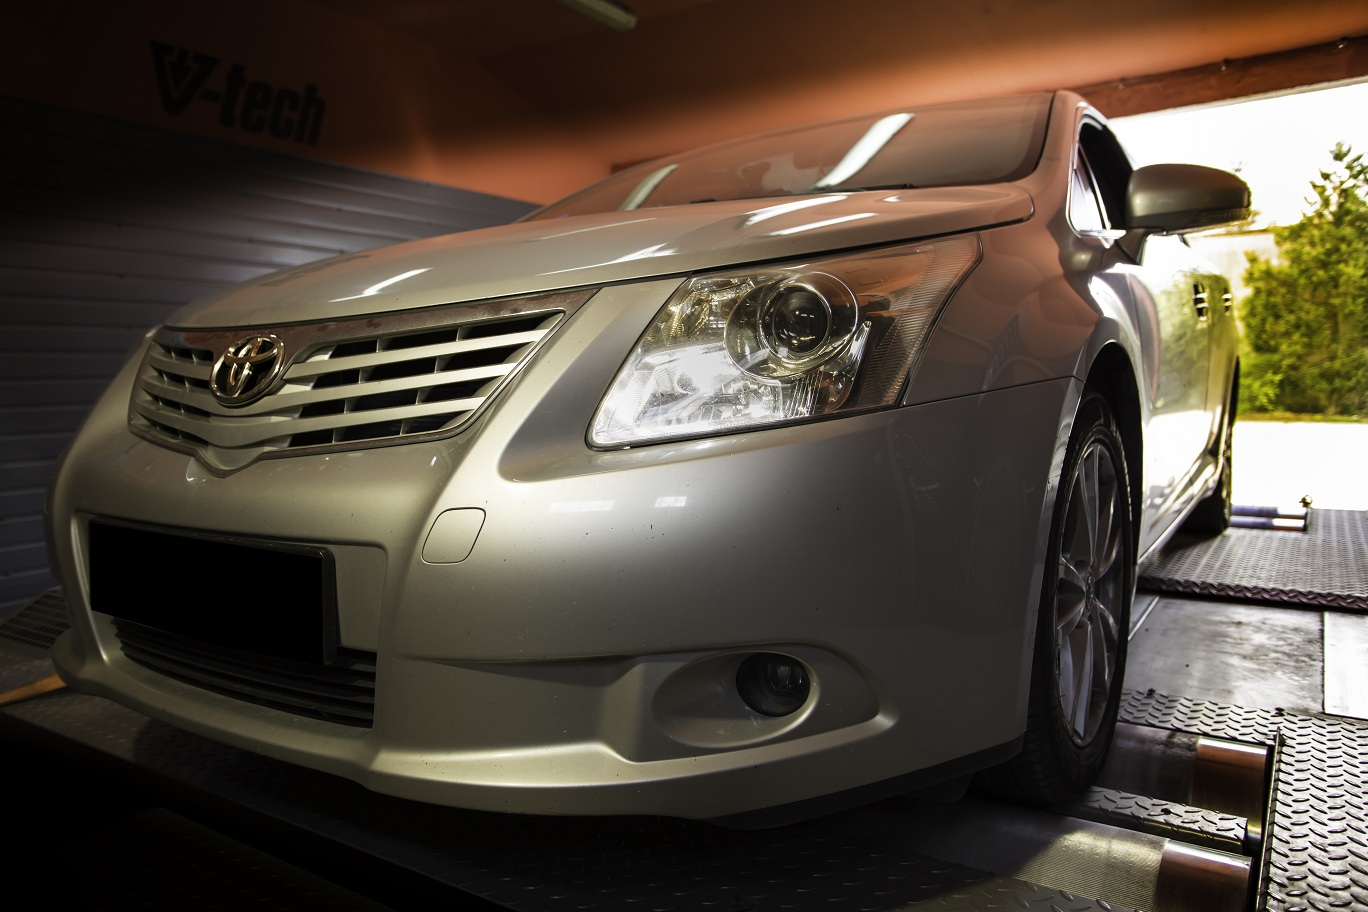 toyota avensis tuning d4d